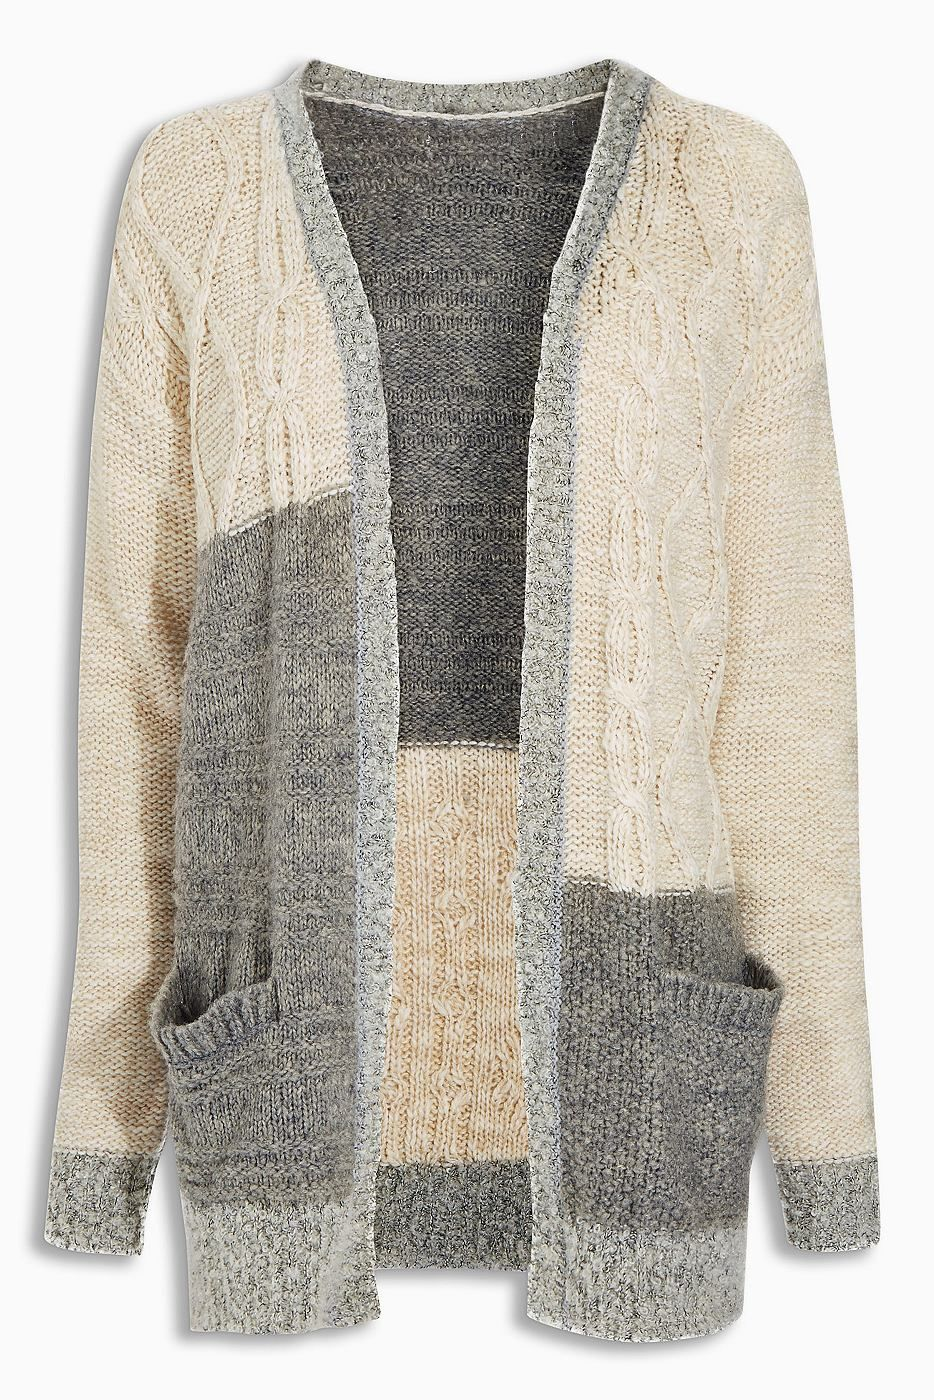 a5c2a87f2d916 Strickjacke mit Zopfmuster im Patchwork-Look 81 % Polyacryl, 16 % Wolle, 2